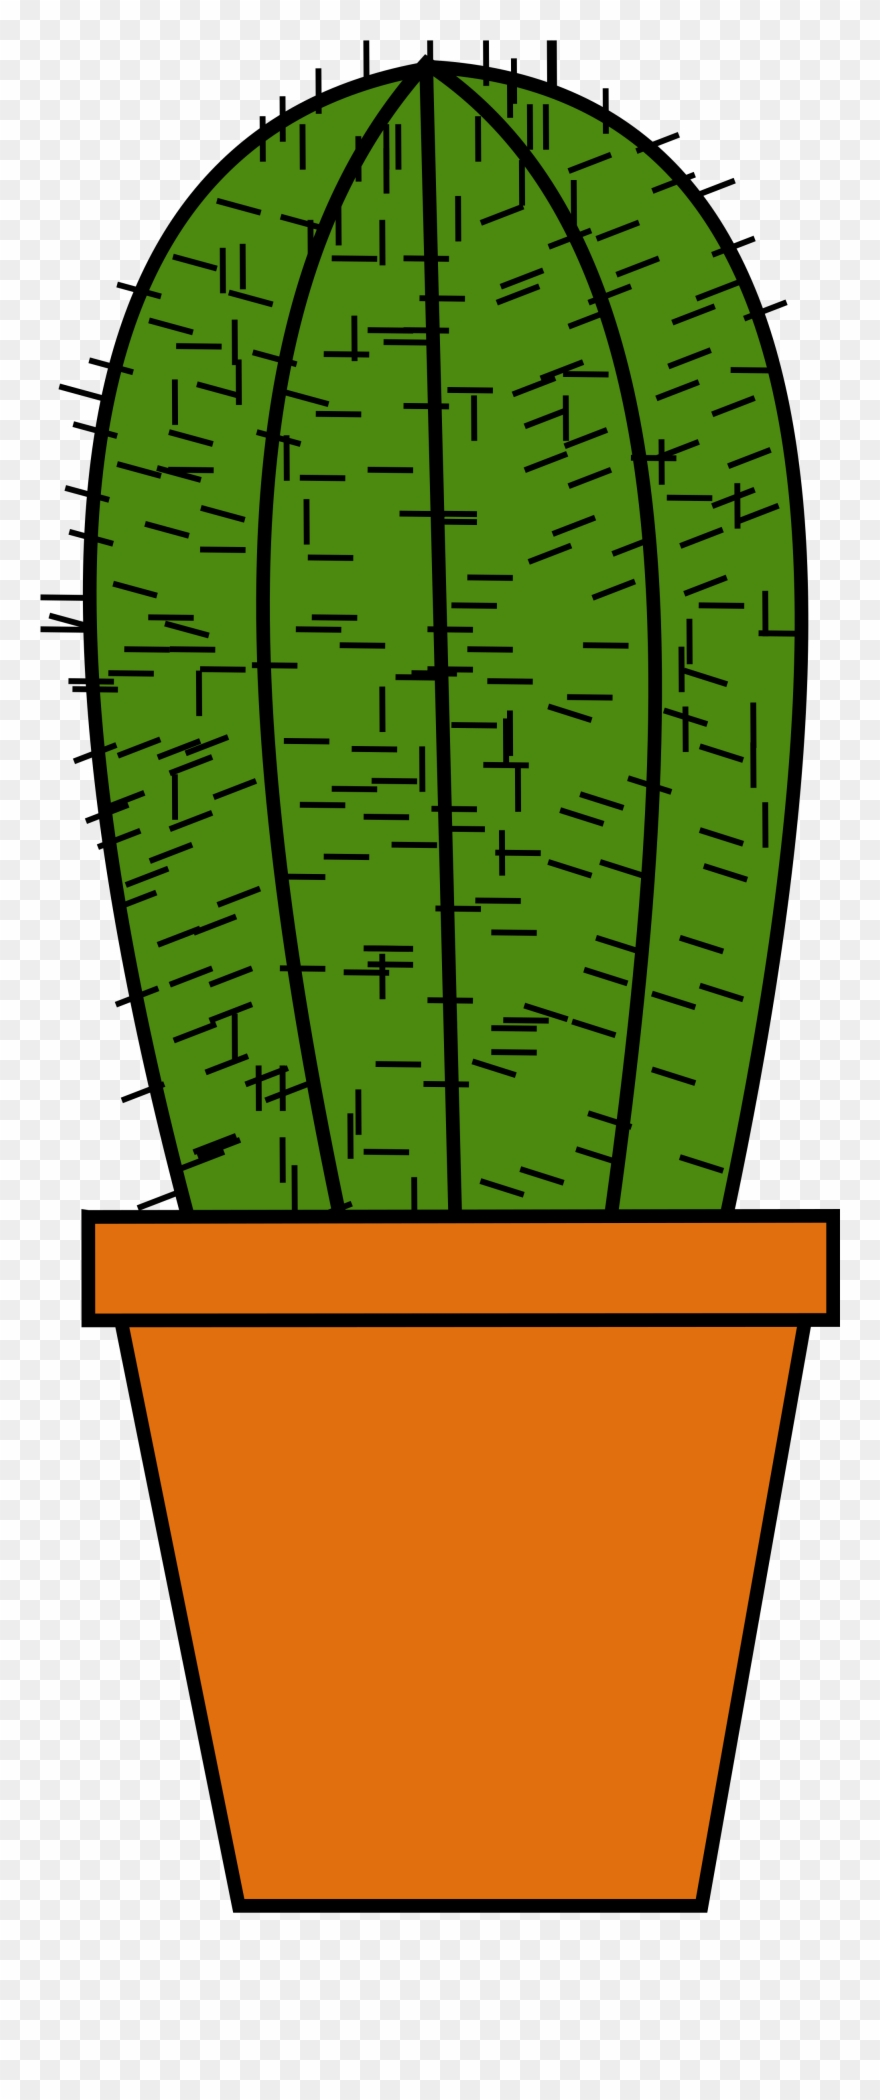 Little cactus cliparts jpg royalty free library Cactus Clay Pot Green - Kaktus Clipart - Png Download (#249595 ... jpg royalty free library